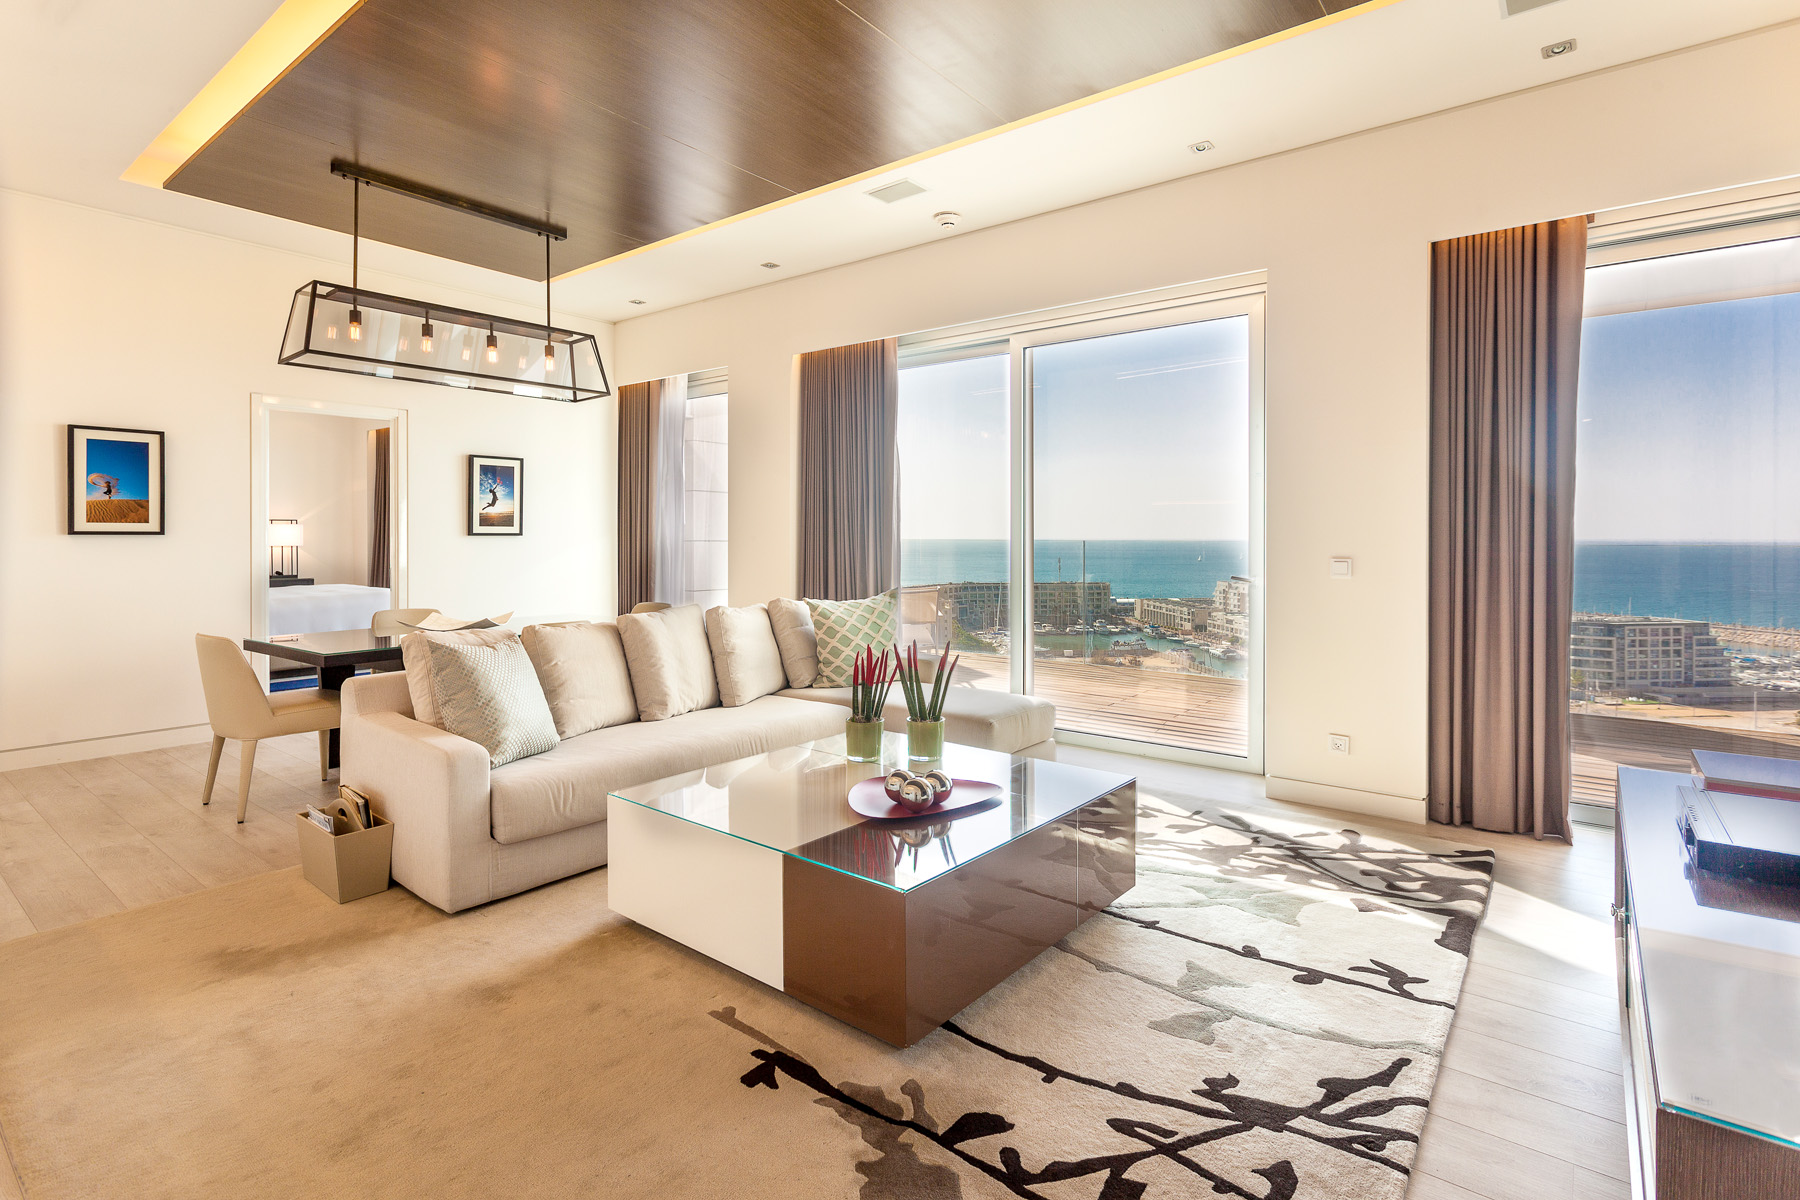 Apartment for Sale at Ritz-Carlton Residences Herzliya Apartment Herzliya, Israel Israel